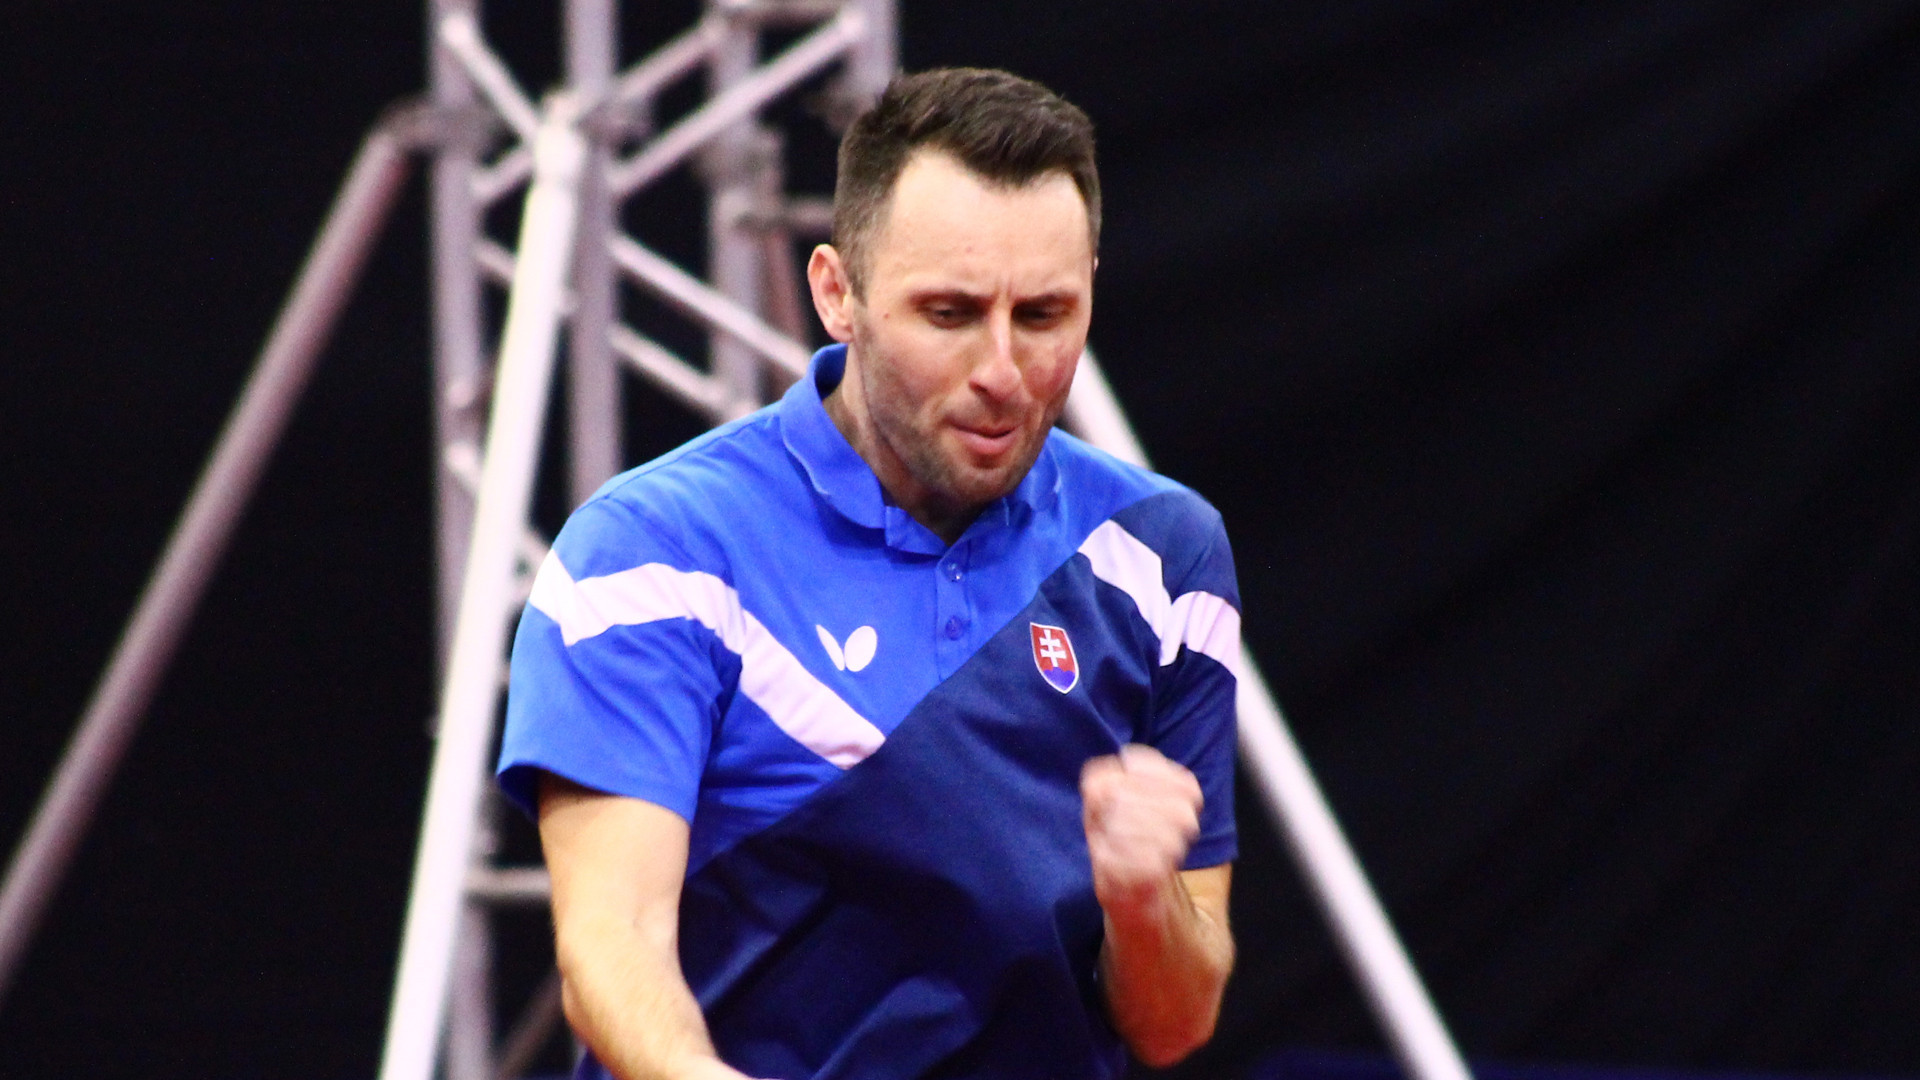 Pištej defeats home hope on day one of ITTF Czech Open